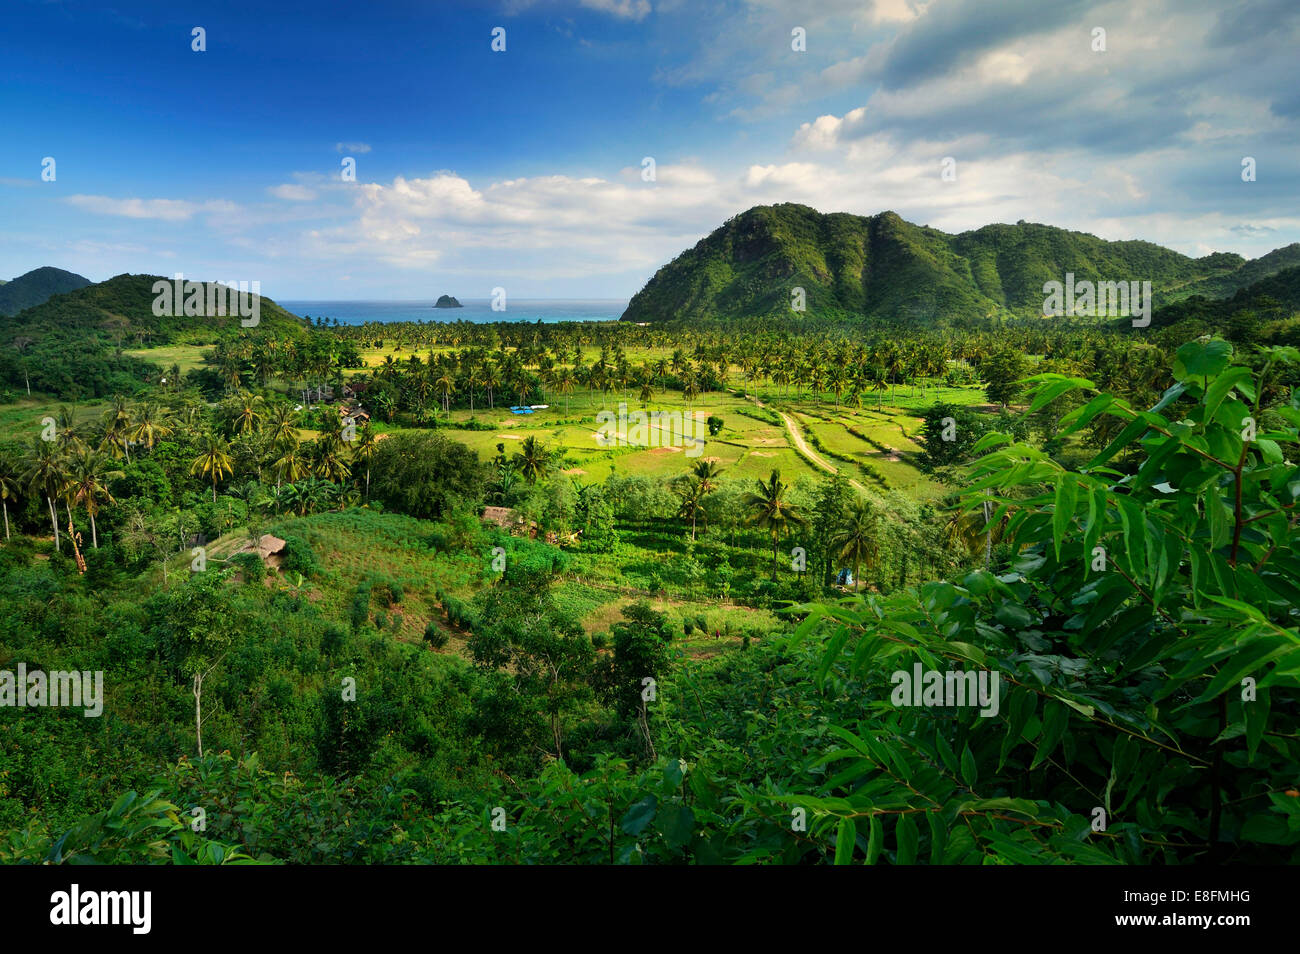 Indonesia, Nusa Tenggara Occidental, vista elevada de la granja, en el fondo del mar Imagen De Stock